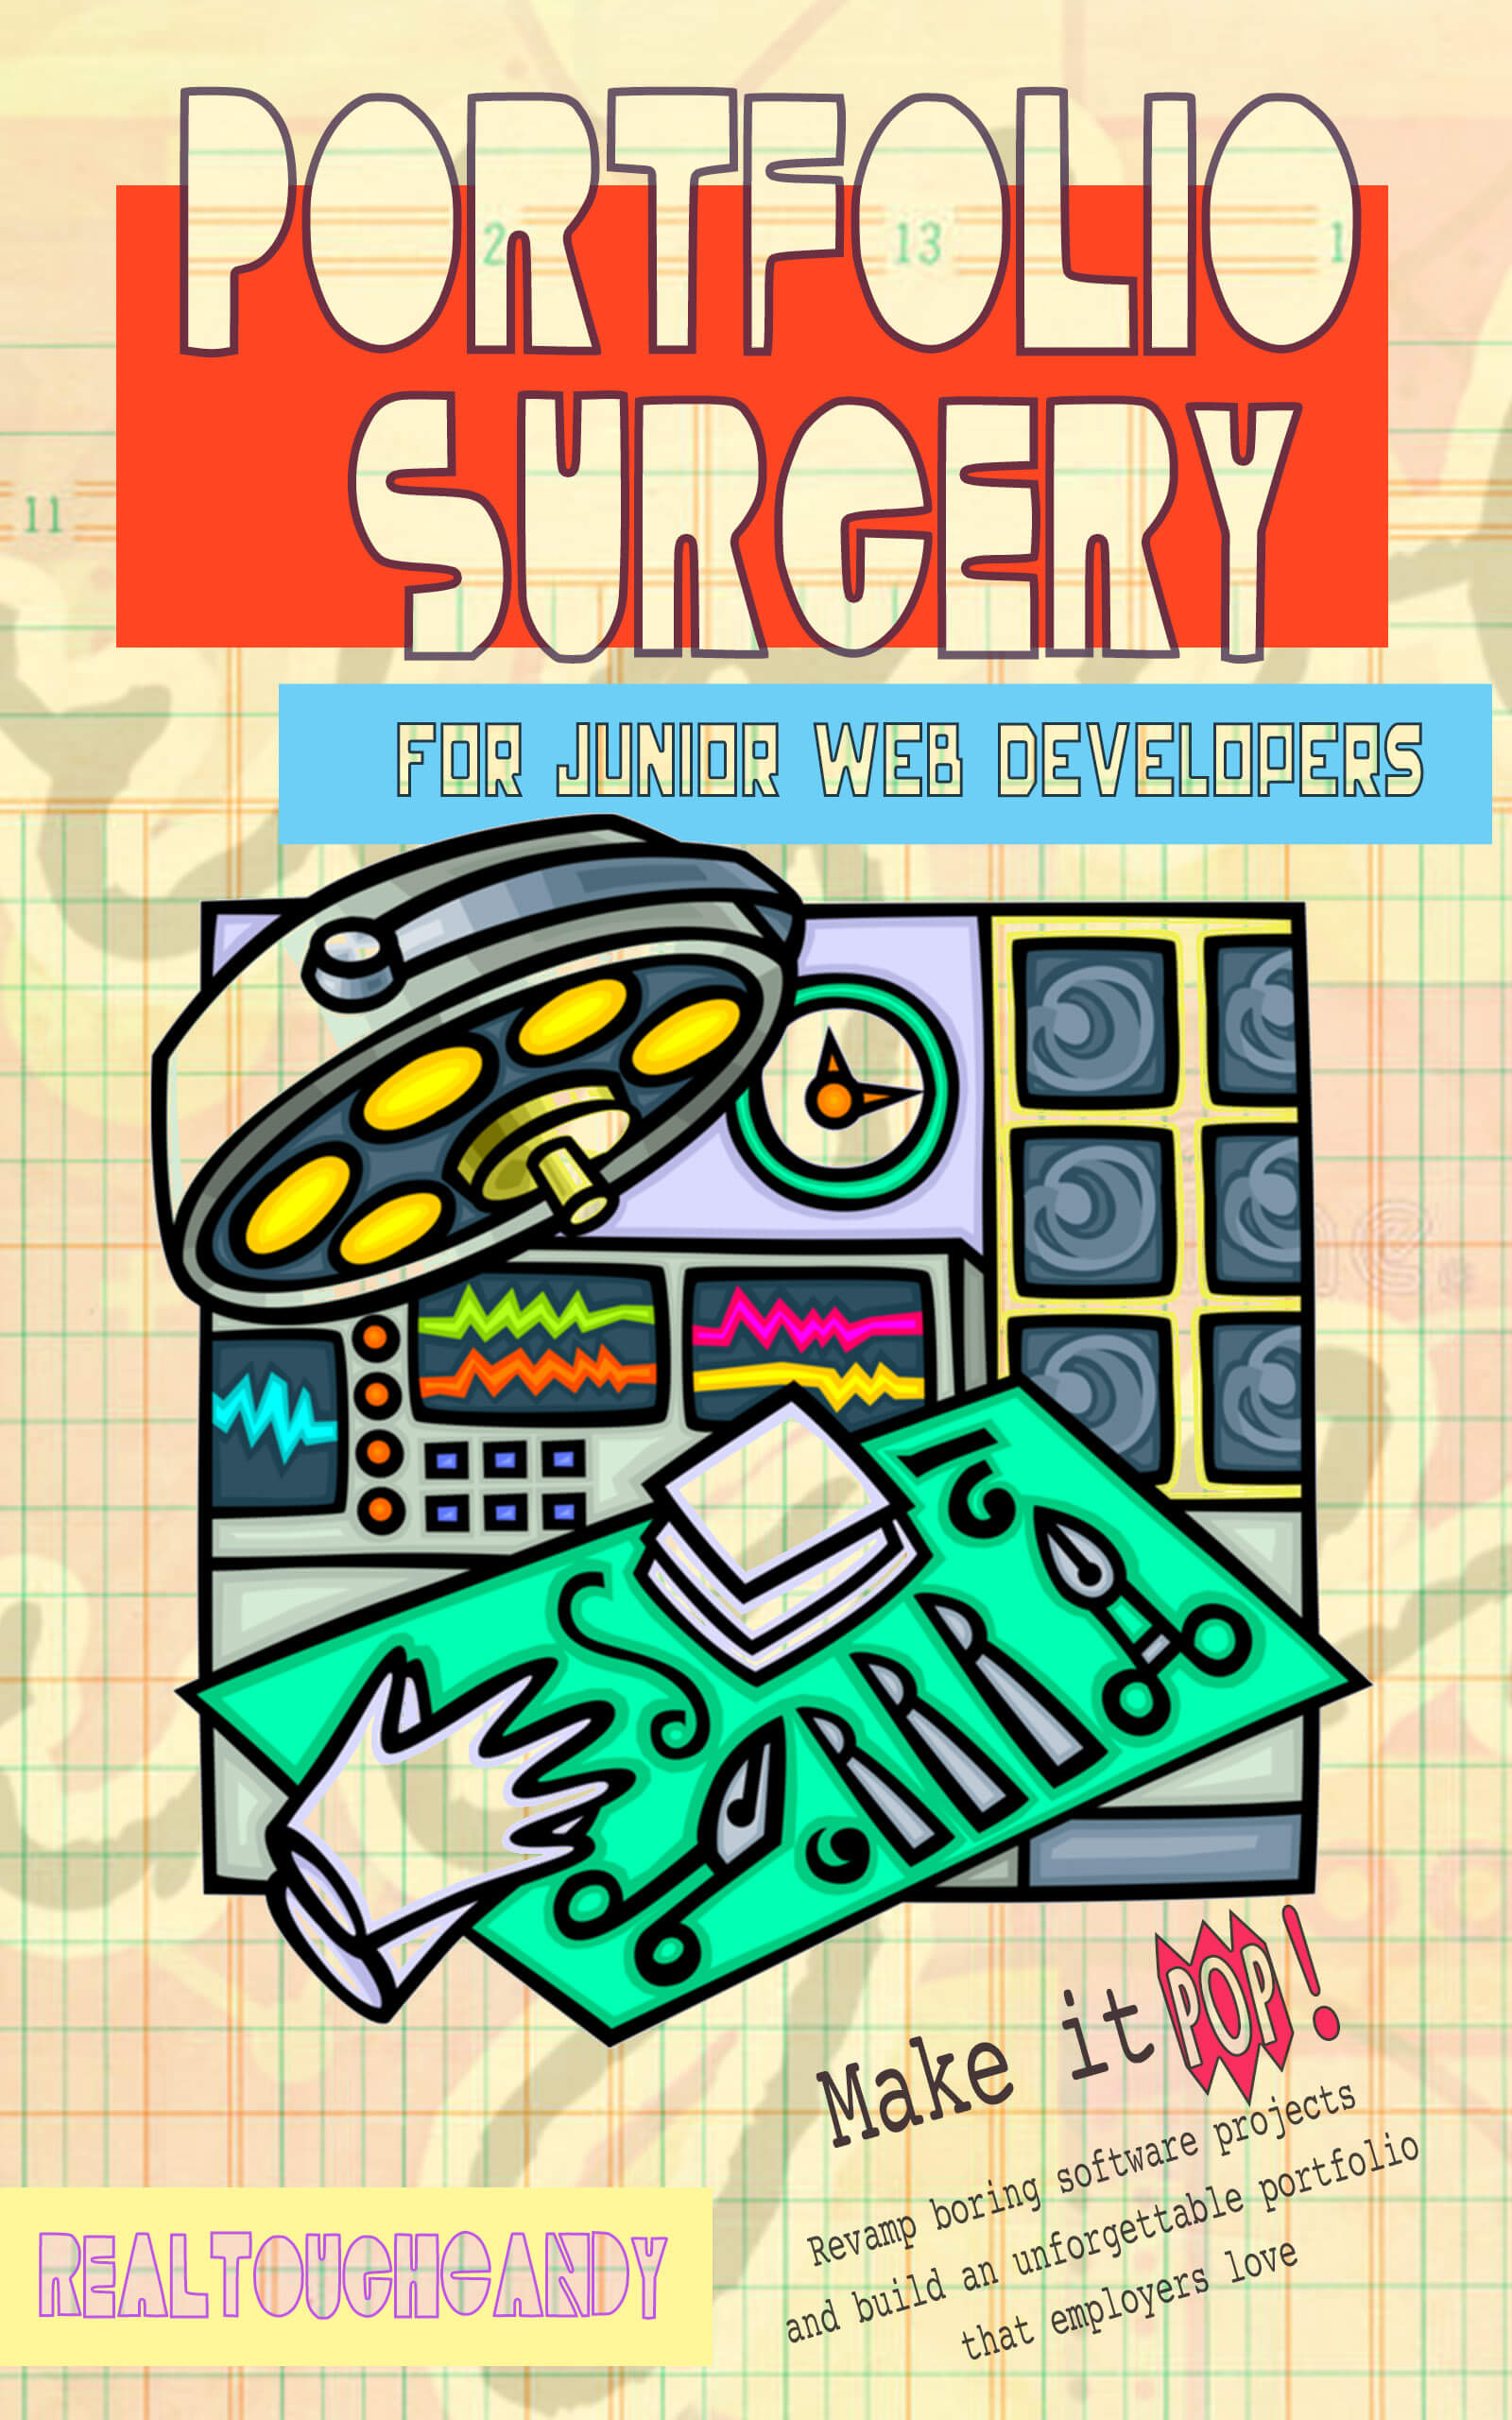 Portfolio Surgery book cover with surgical gloves, light, scalpel and monitors